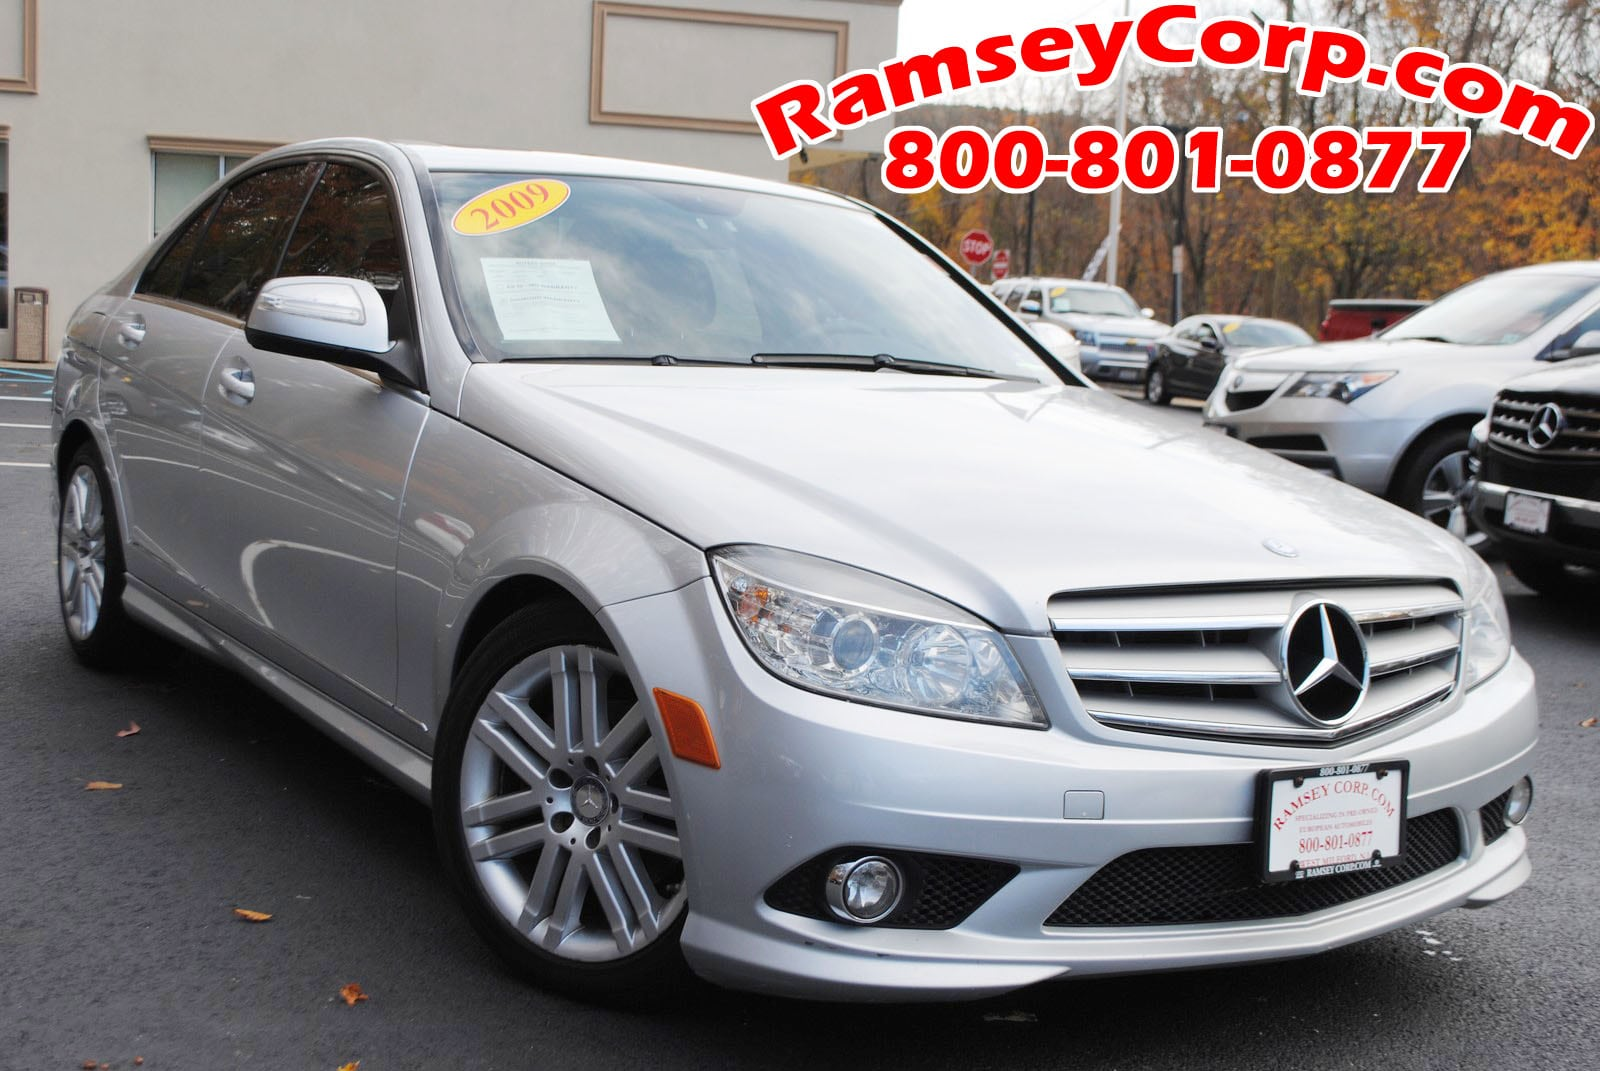 used 2009 mercedes benz c class for sale west milford nj. Black Bedroom Furniture Sets. Home Design Ideas